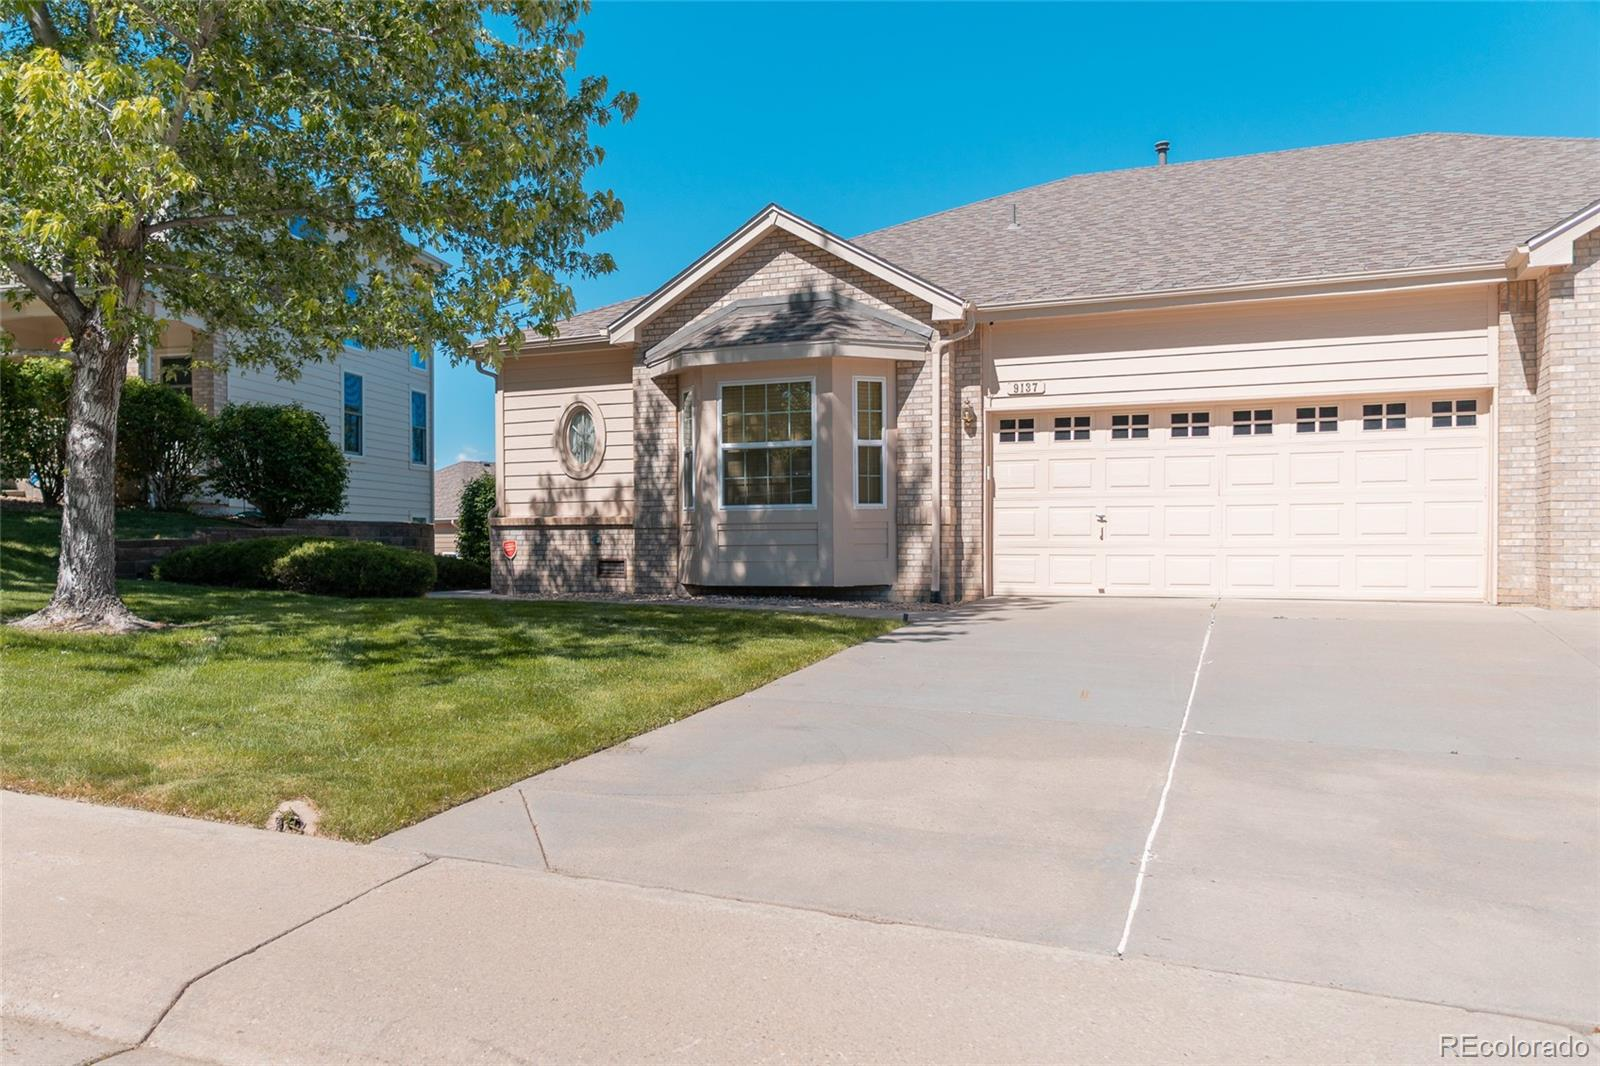 MLS# 4859119 - 30 - 9137 Woodland Drive, Highlands Ranch, CO 80126